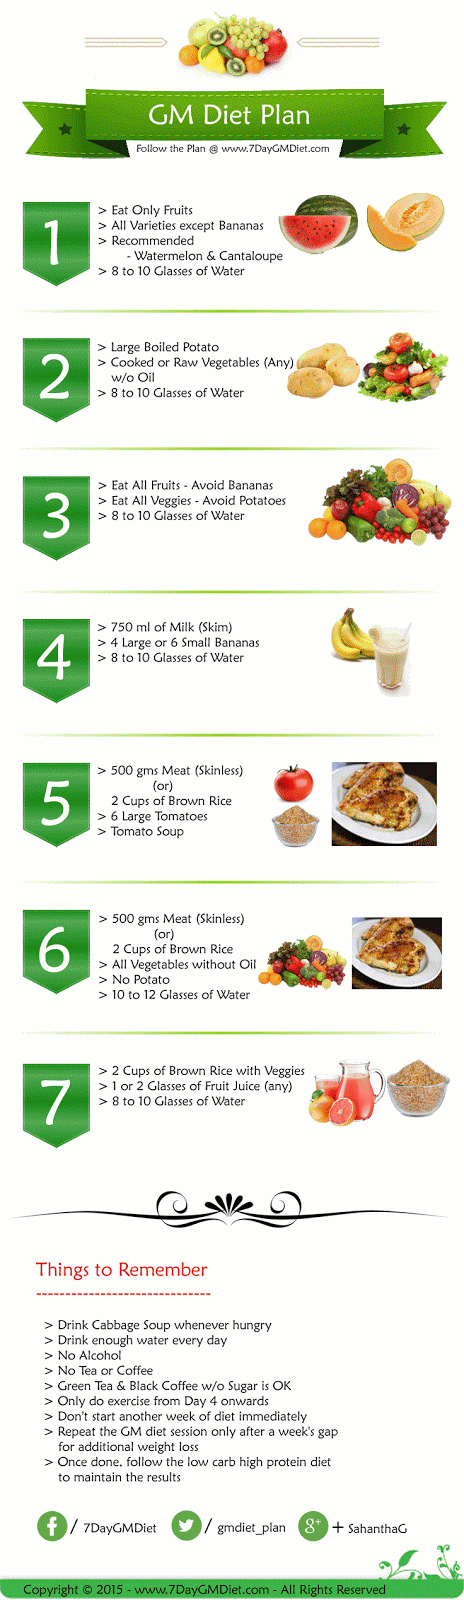 Download gm diet chart pdf printable also plan natural weight loss in days rh daygmdiet